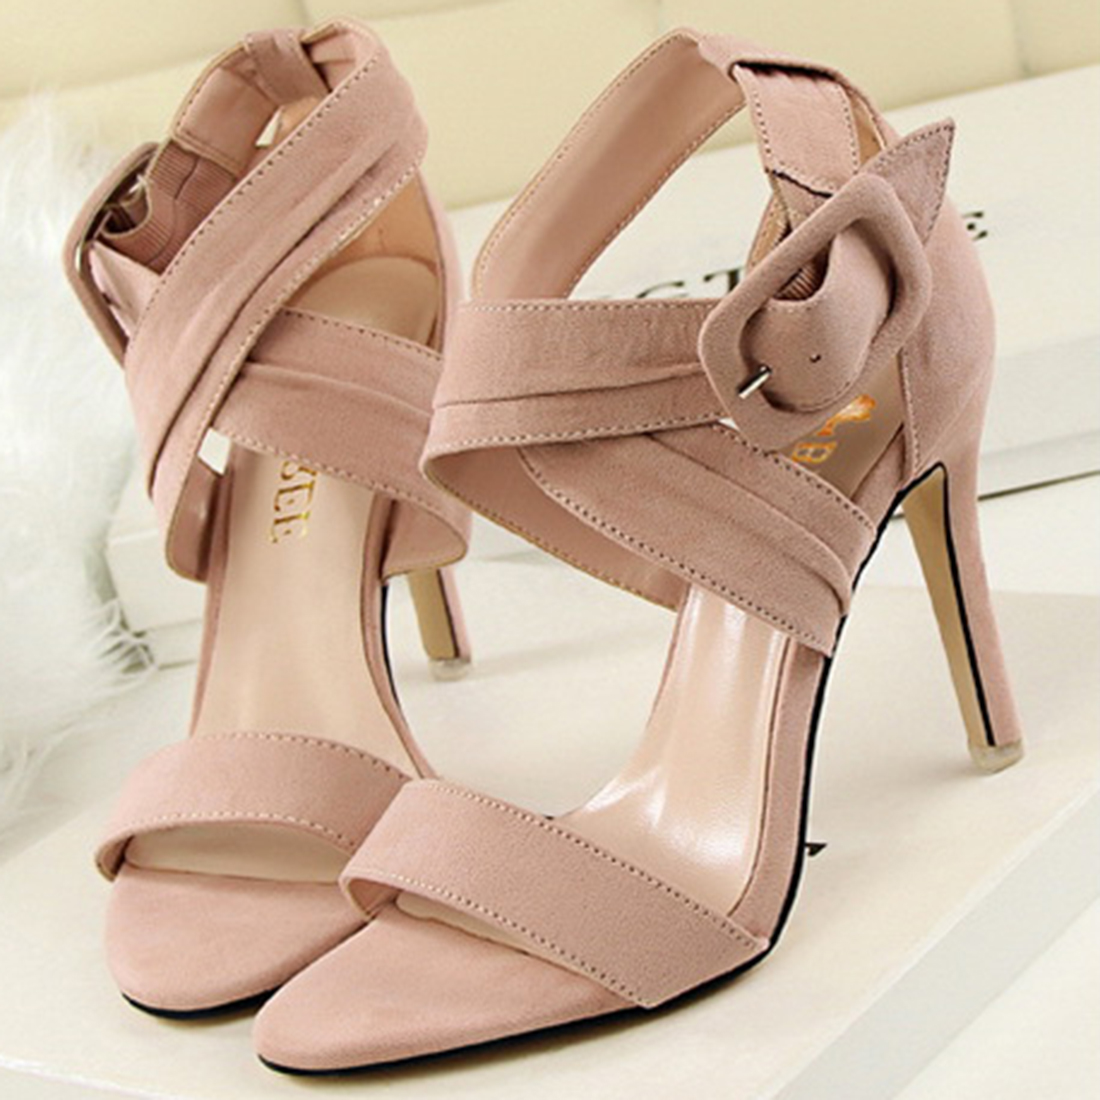 2017 Sexy Women Pumps Open Toe Lace Up High Heels Sandals Woman Ankle Cross Strappy Summer Roman Shoes black red brown sexy open toe women sandals gladiator lace up high heel sandal boots stiletto heels strappy pumps summer shoes woman size 34 45